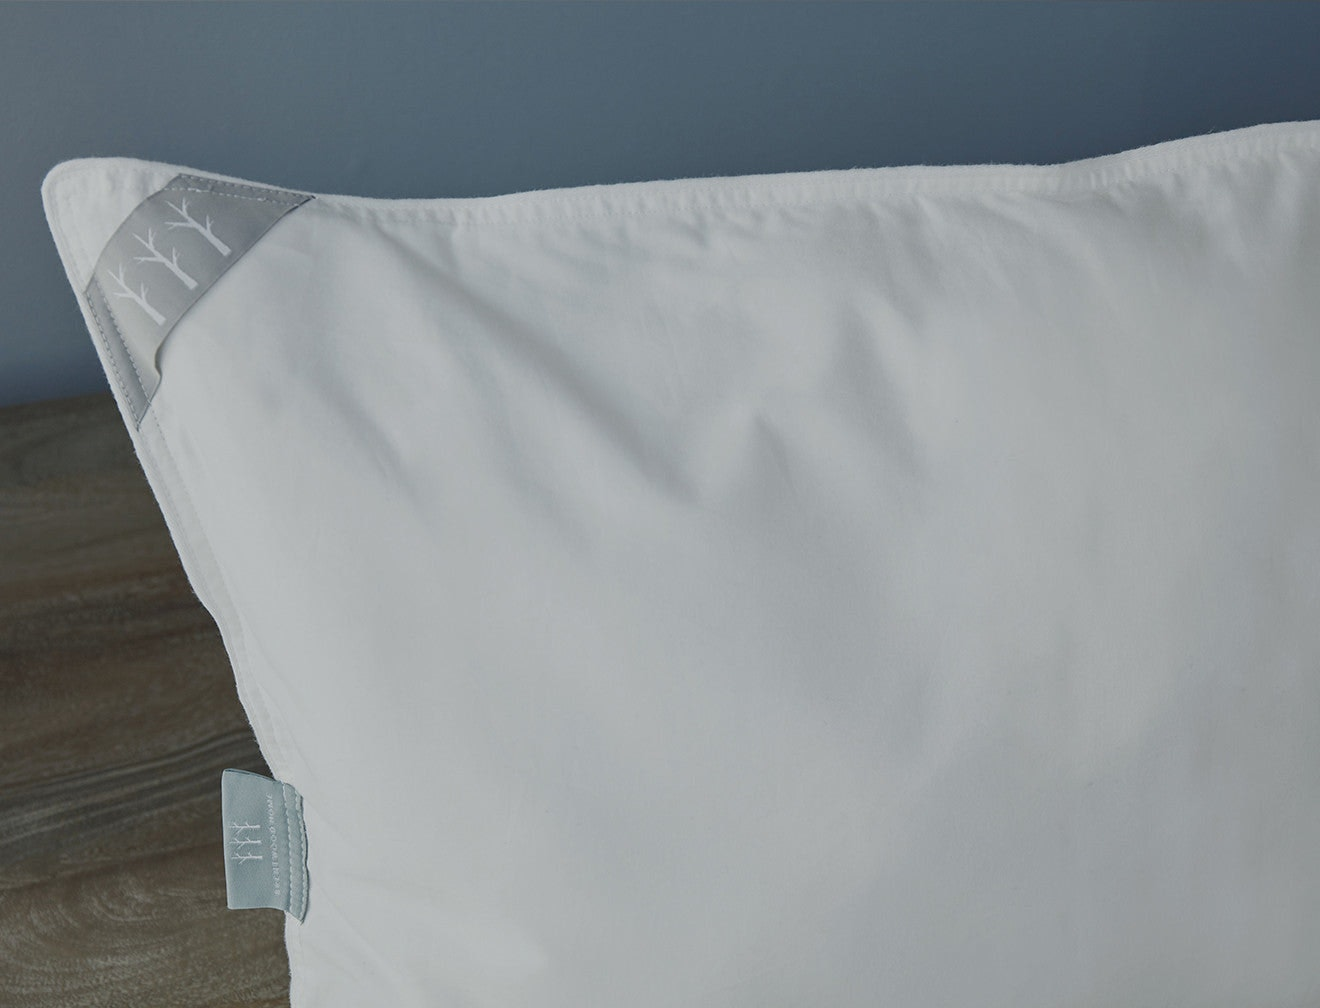 Image result for foam pillow